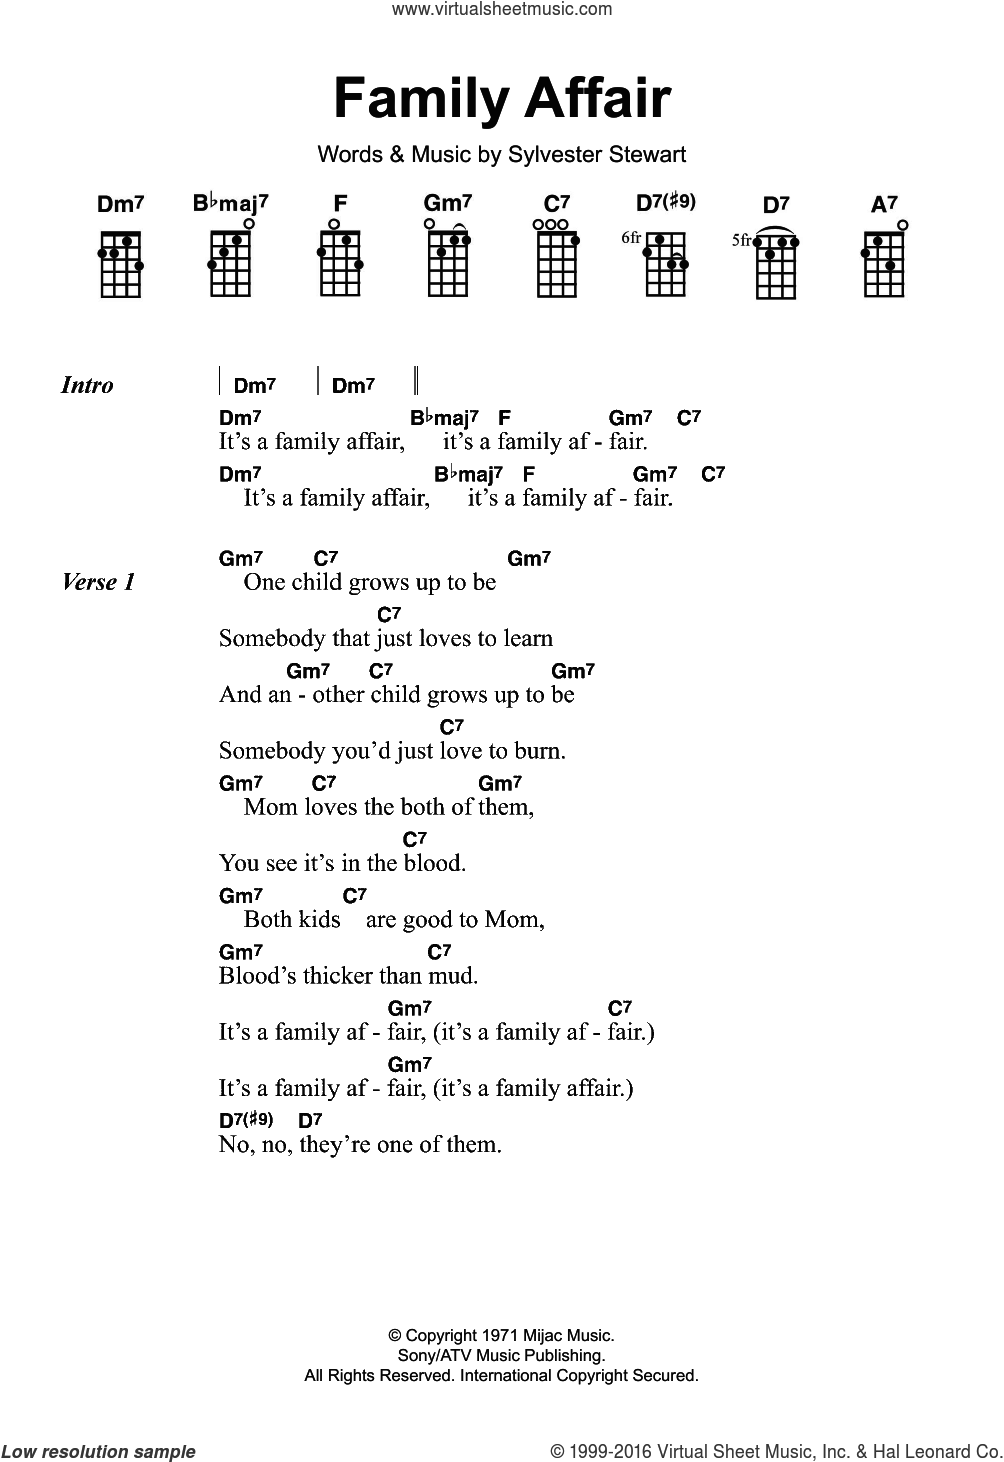 Family Affair sheet music for ukulele by Sly & The Family Stone and Sylvester Stewart, intermediate skill level